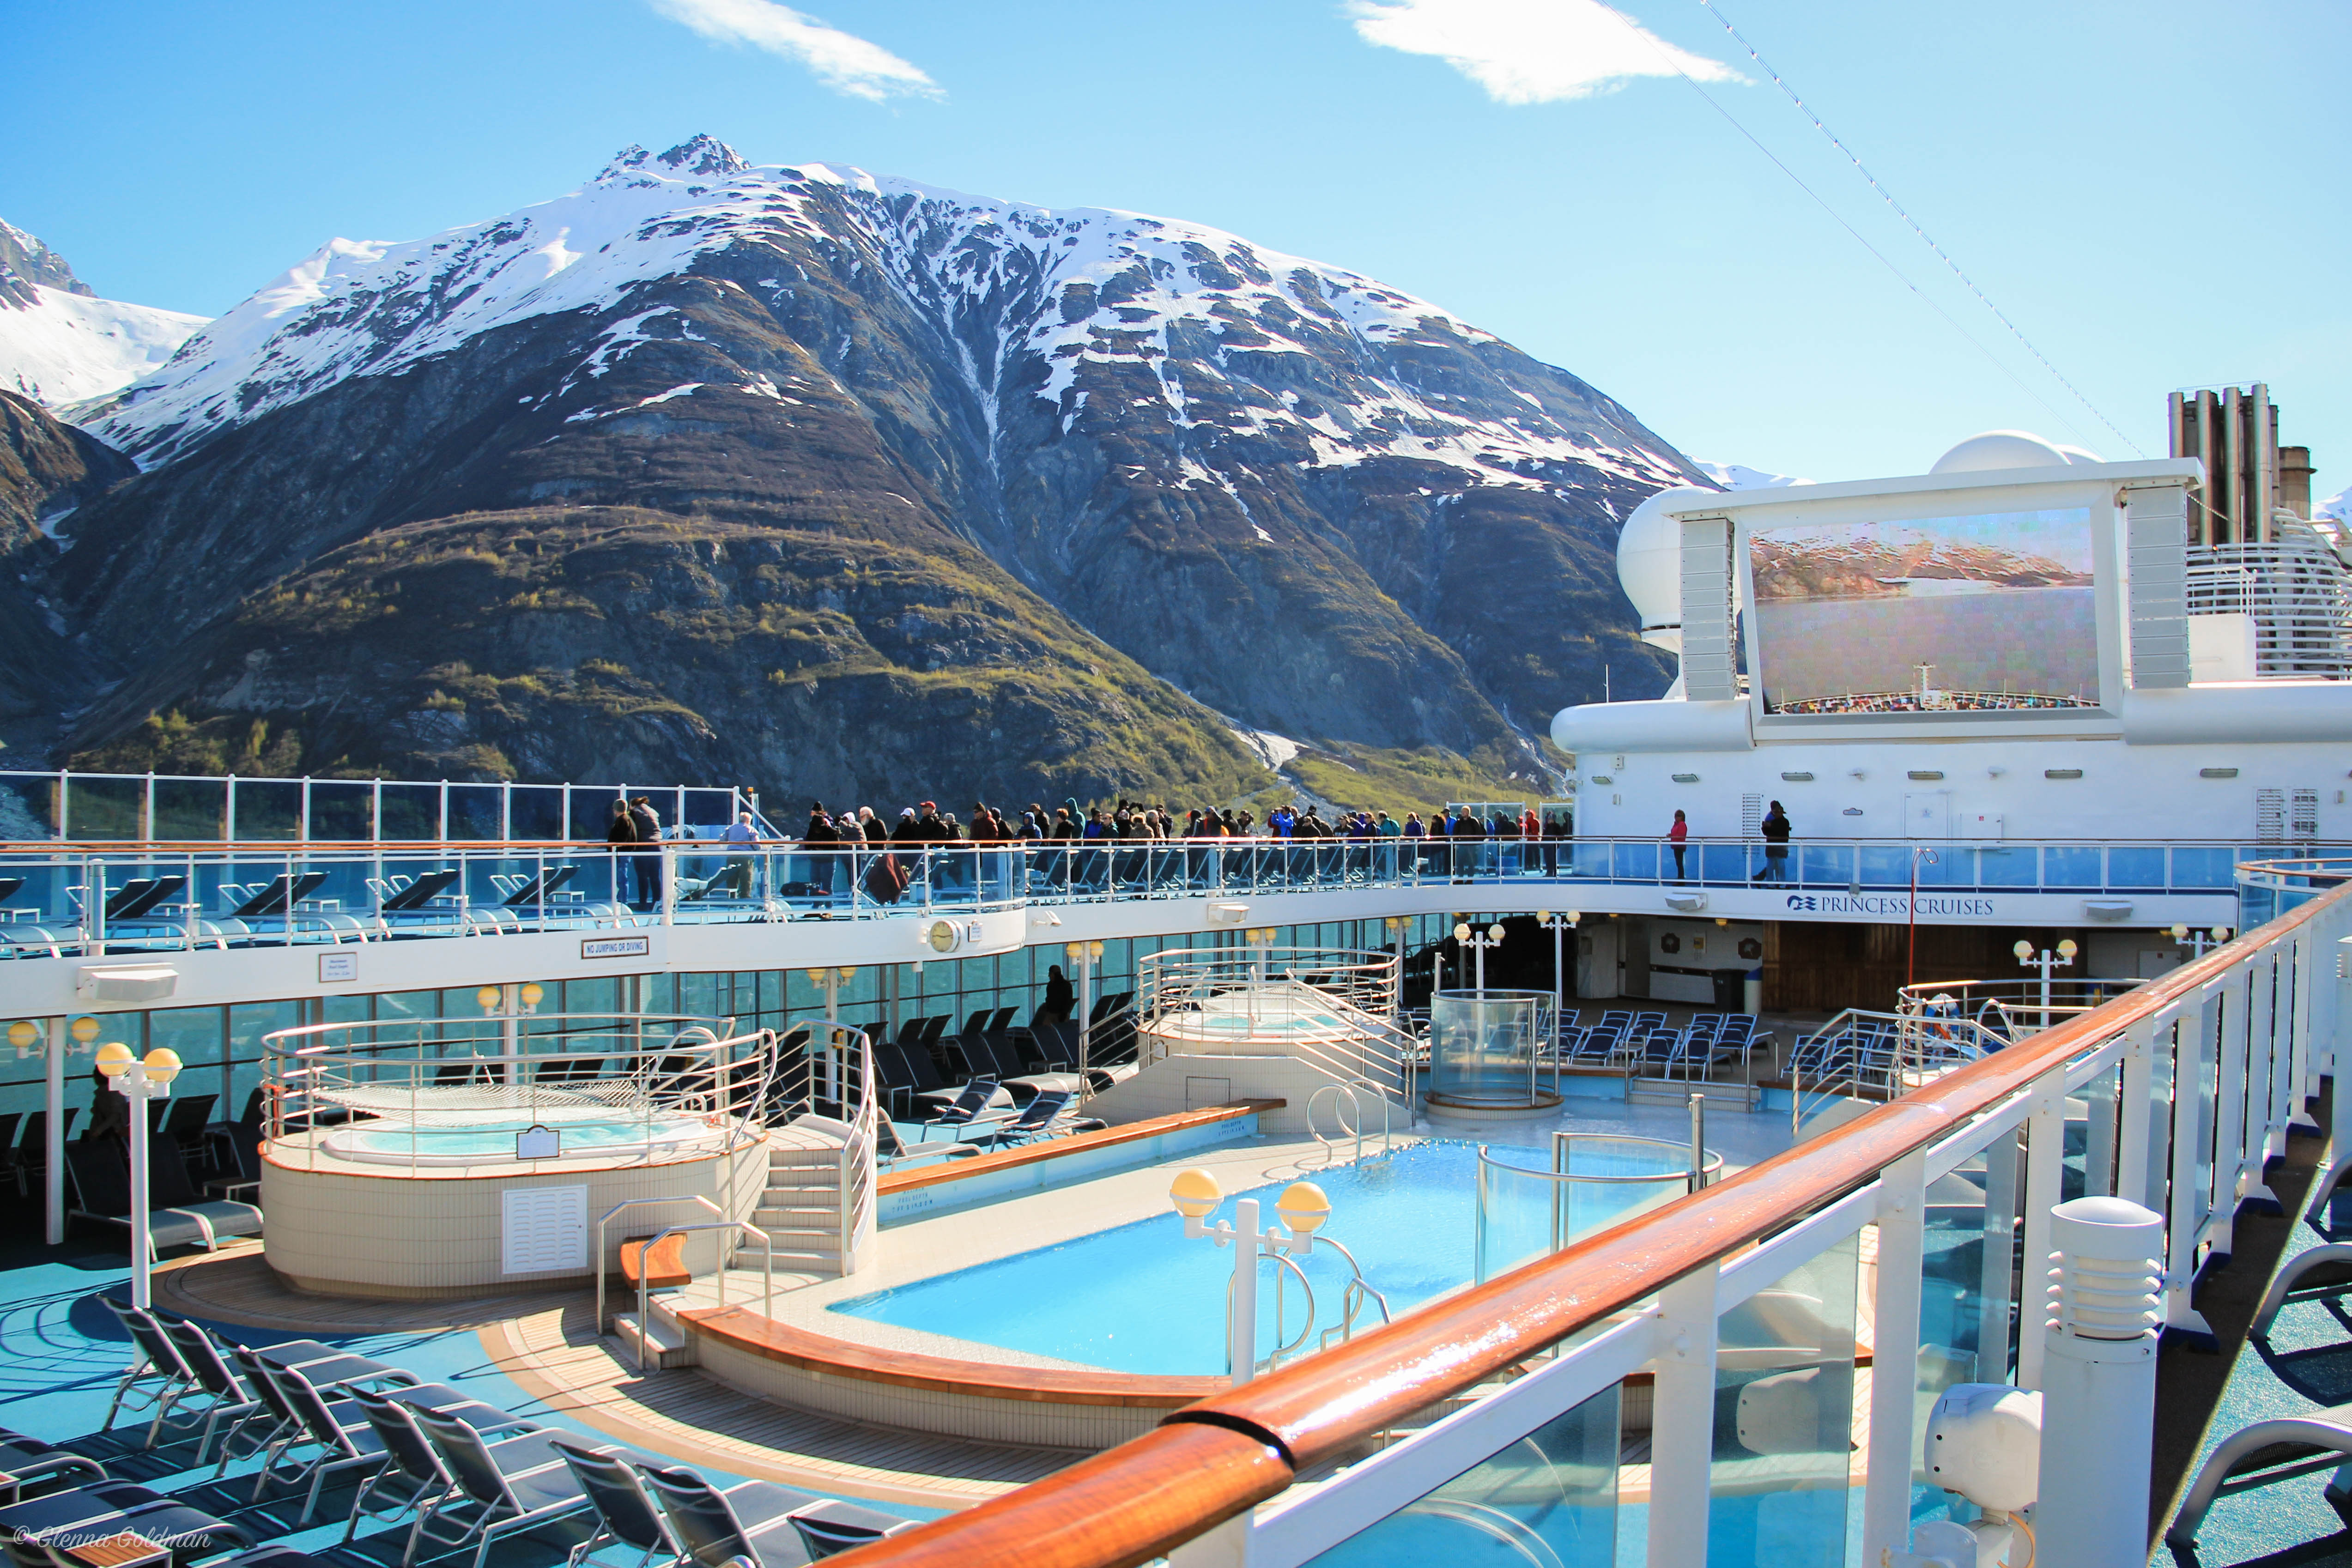 An Alaskan Cruise – Vancouver to Anchorage